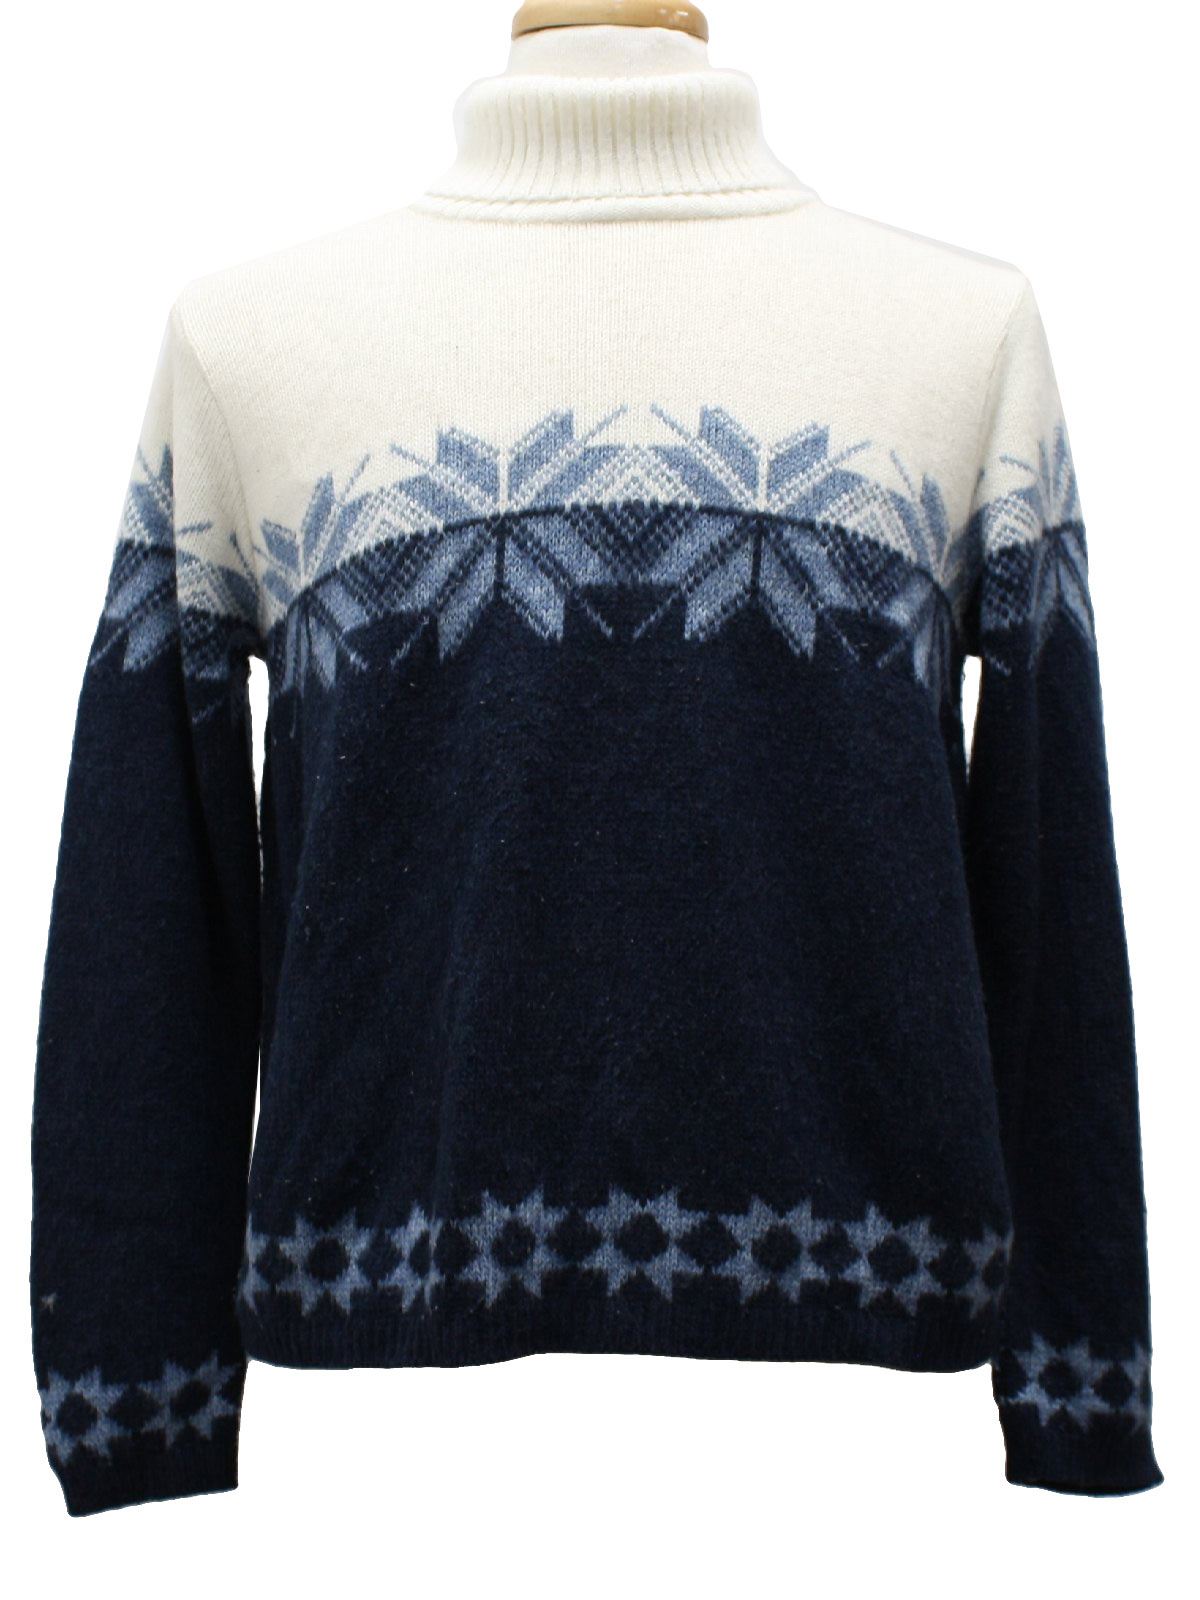 Womens Christmas Ski Sweater: -Fashion Bug- Womens dark blue ...